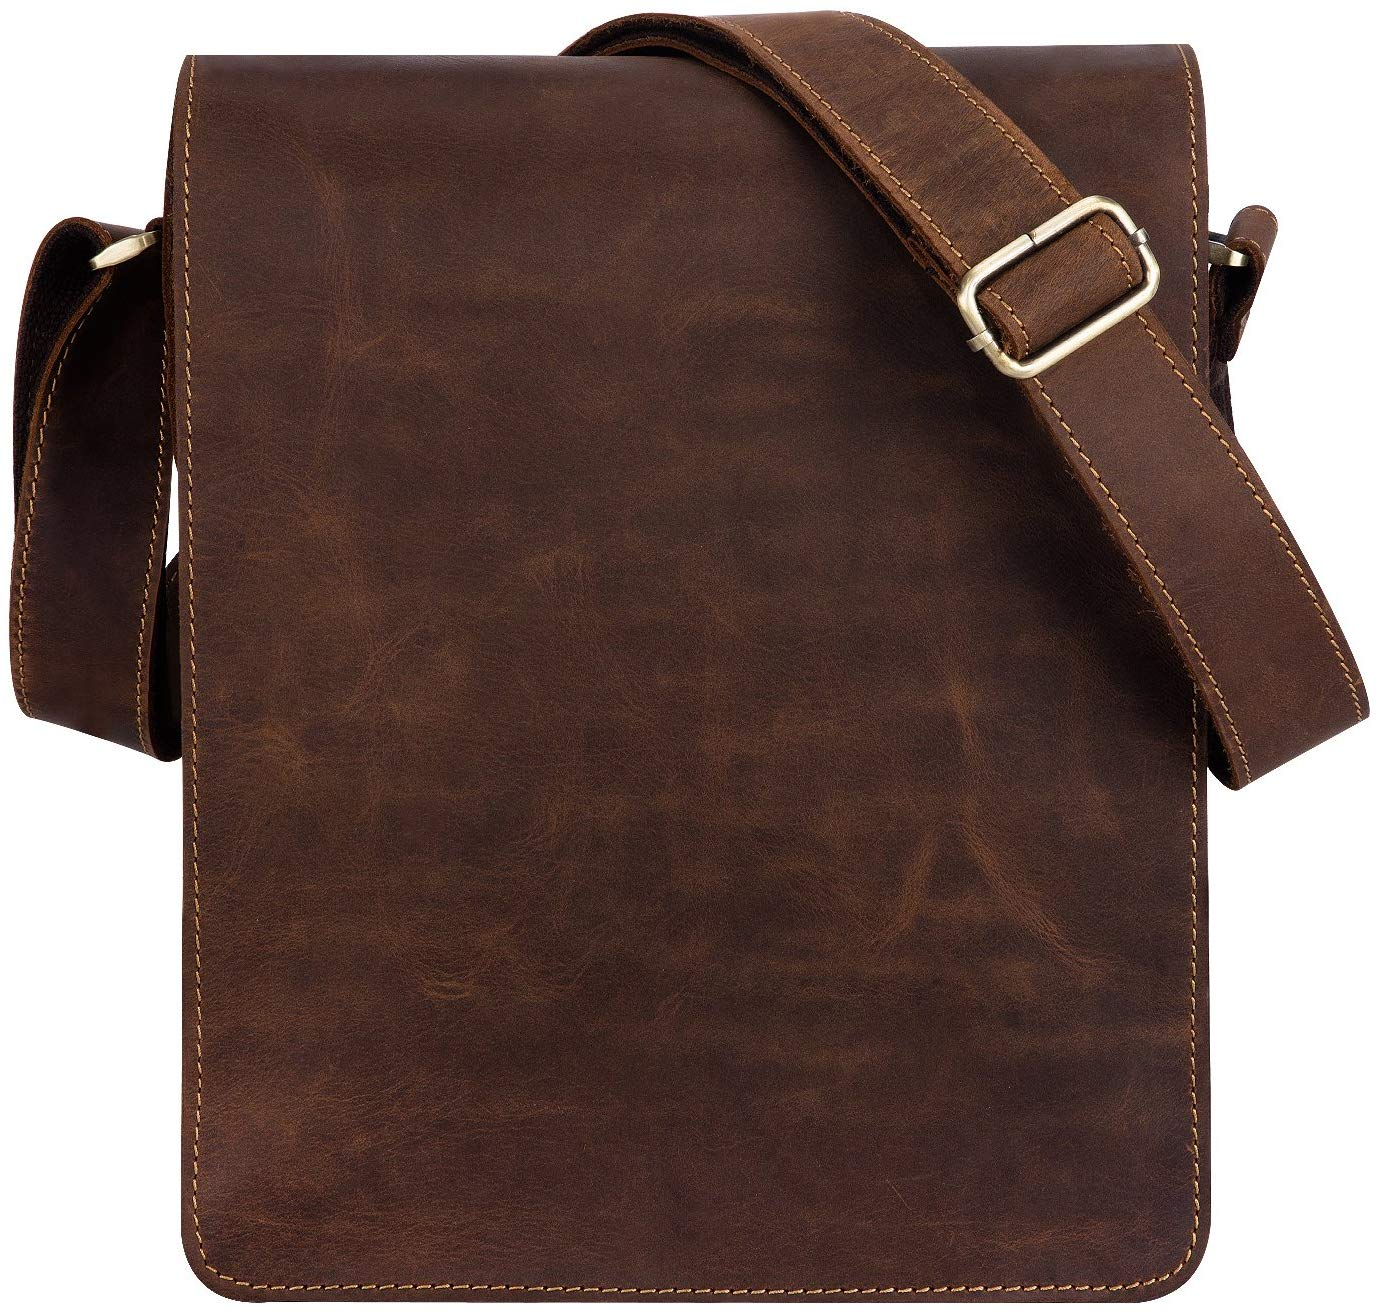 Kattee Vintage Cow Leather Flapover Messenger Bag